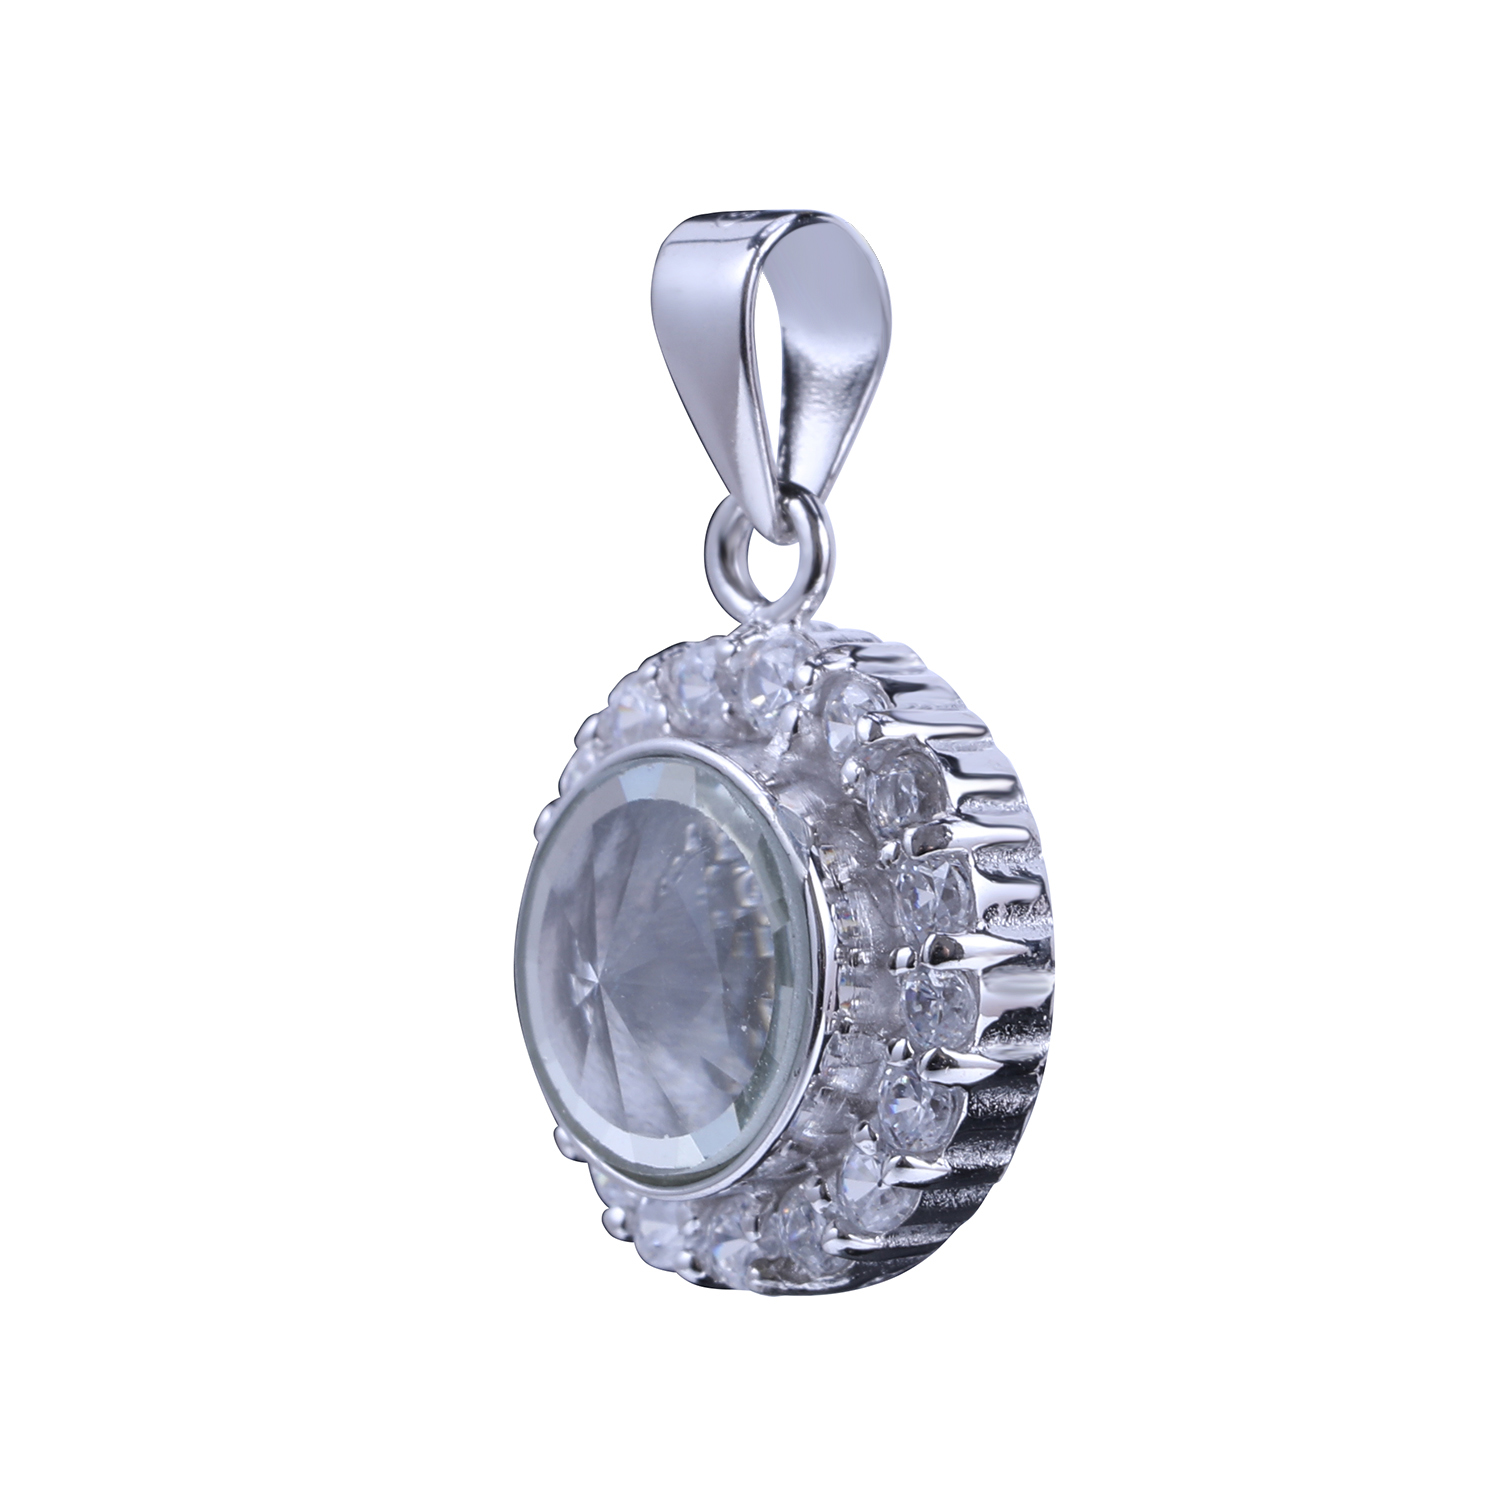 Customized Wholesales Silver Round Necklace With Charms Inside Floating Charm Necklace